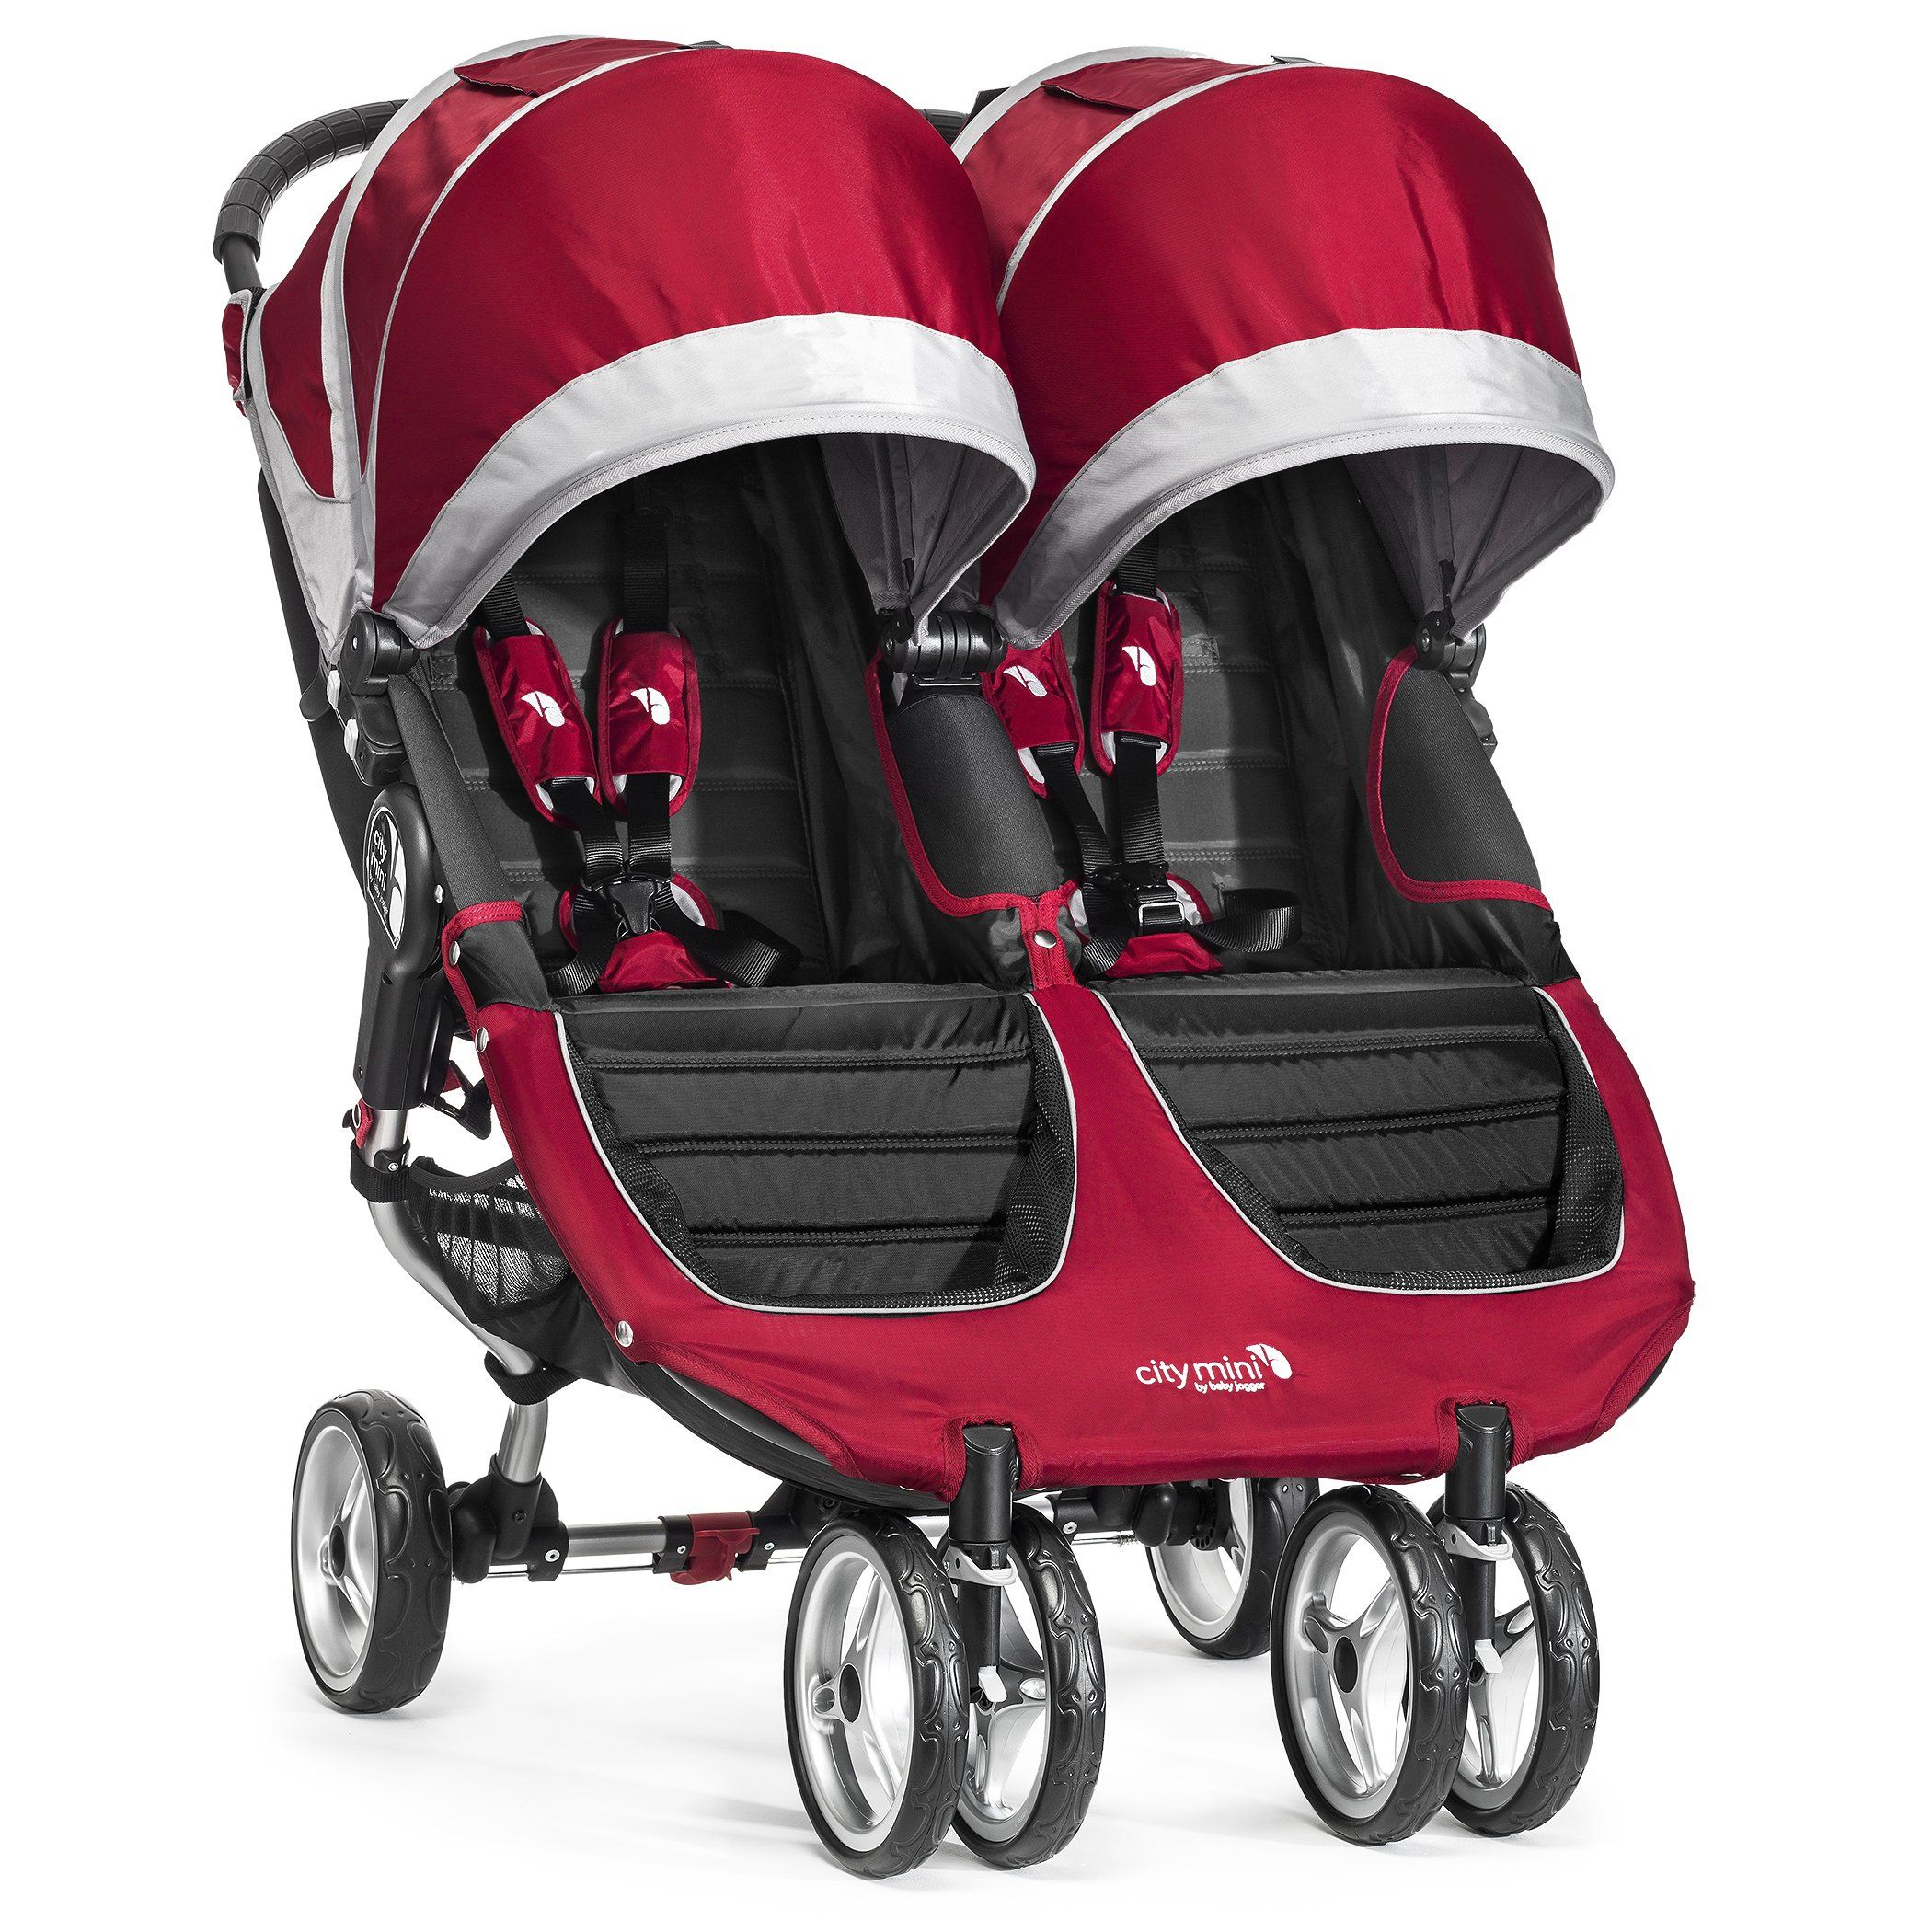 Baby Buggy Brands Best Baby Travel Products 3 Double Stroller Brands You Can